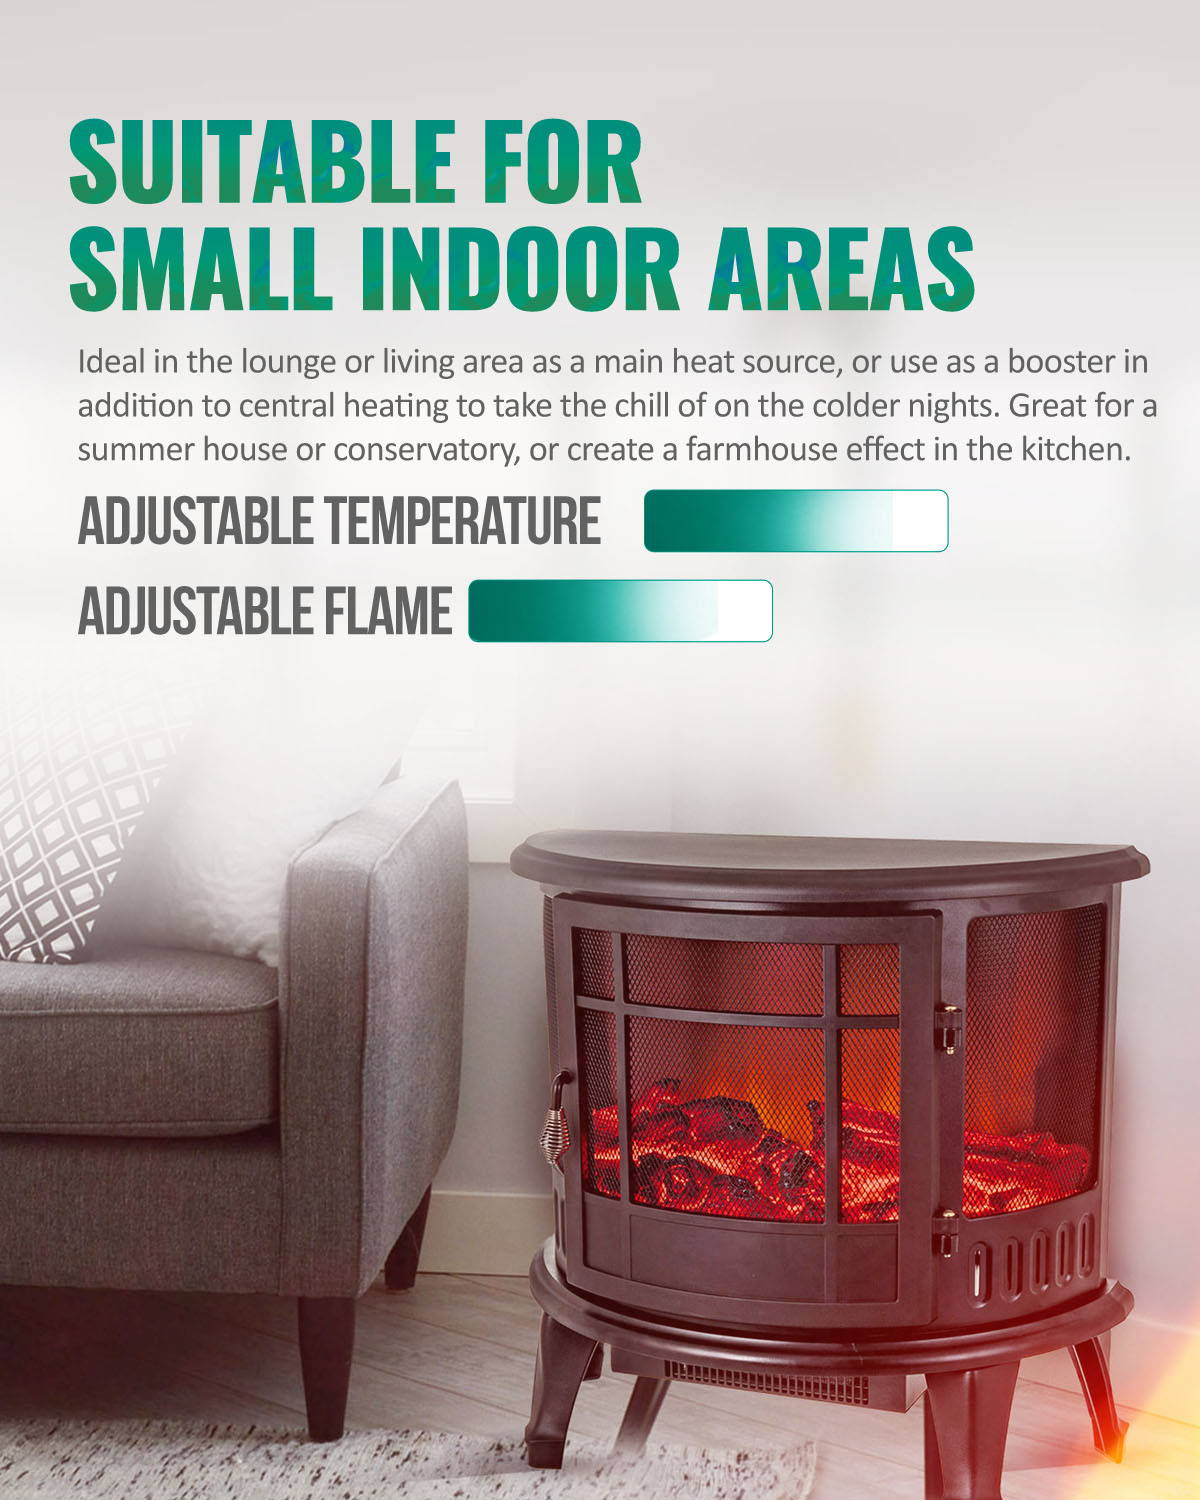 Suitable for small indoor areas